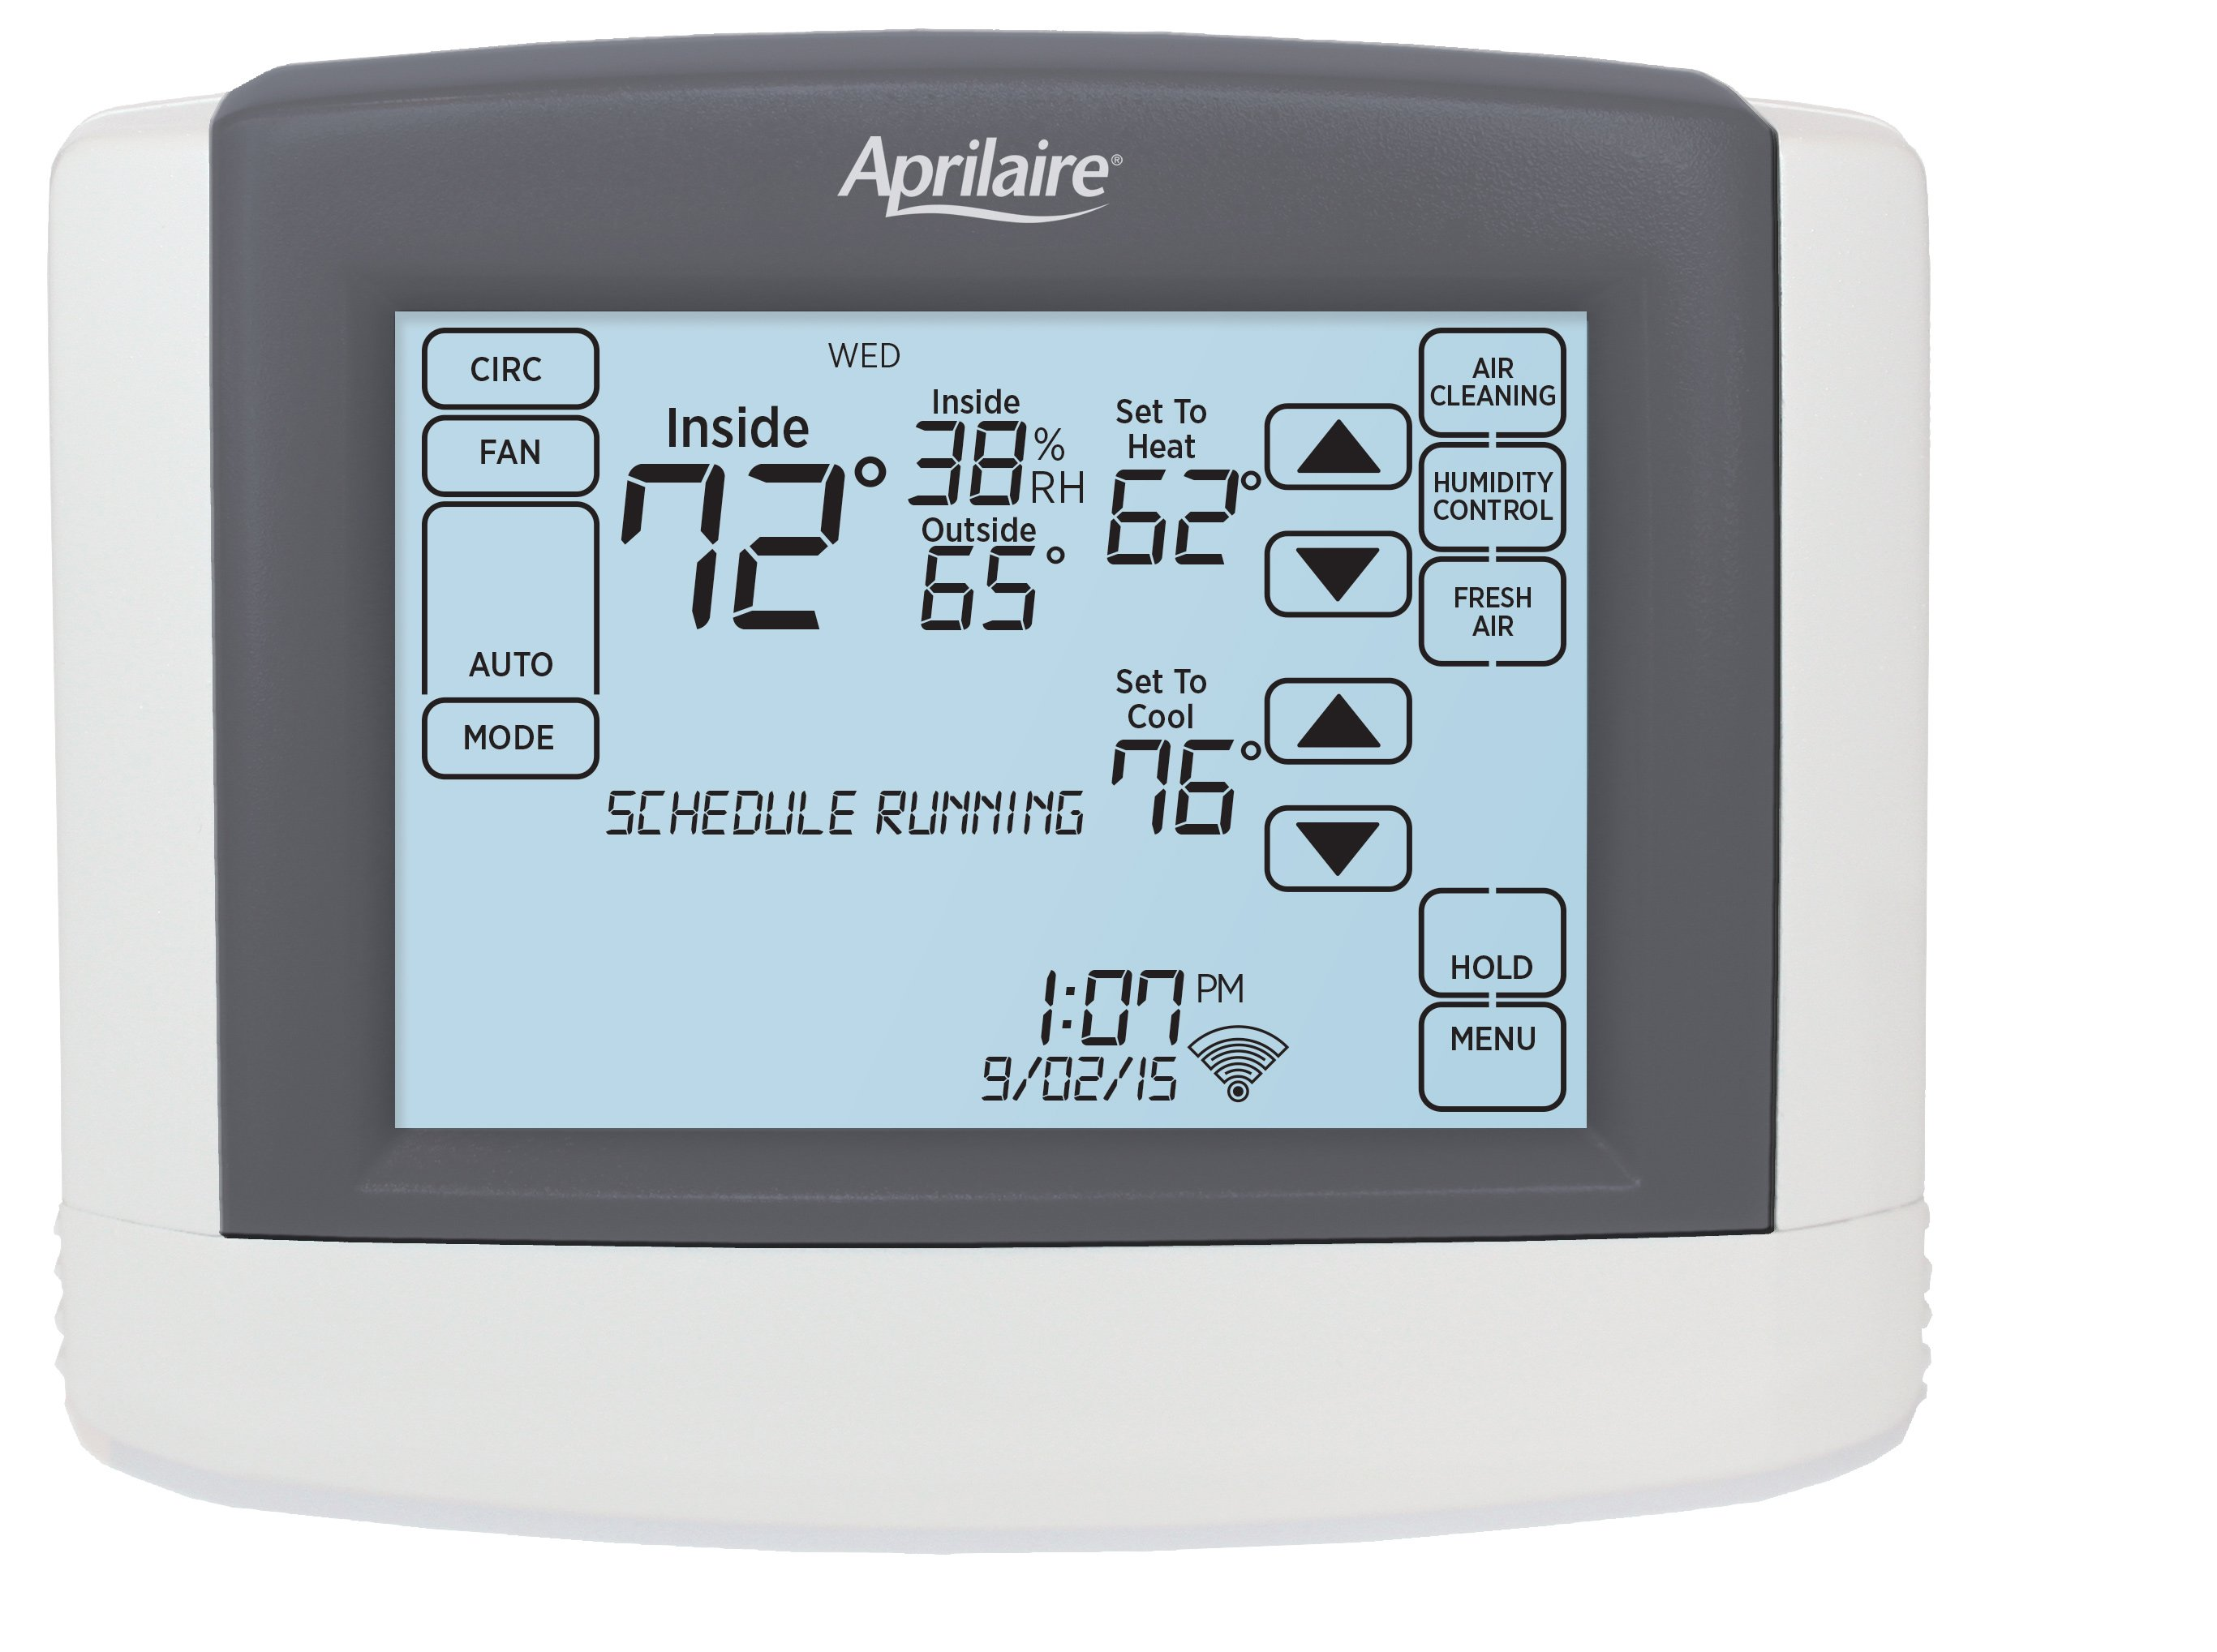 Aprilaire Model 8820 Thermostat